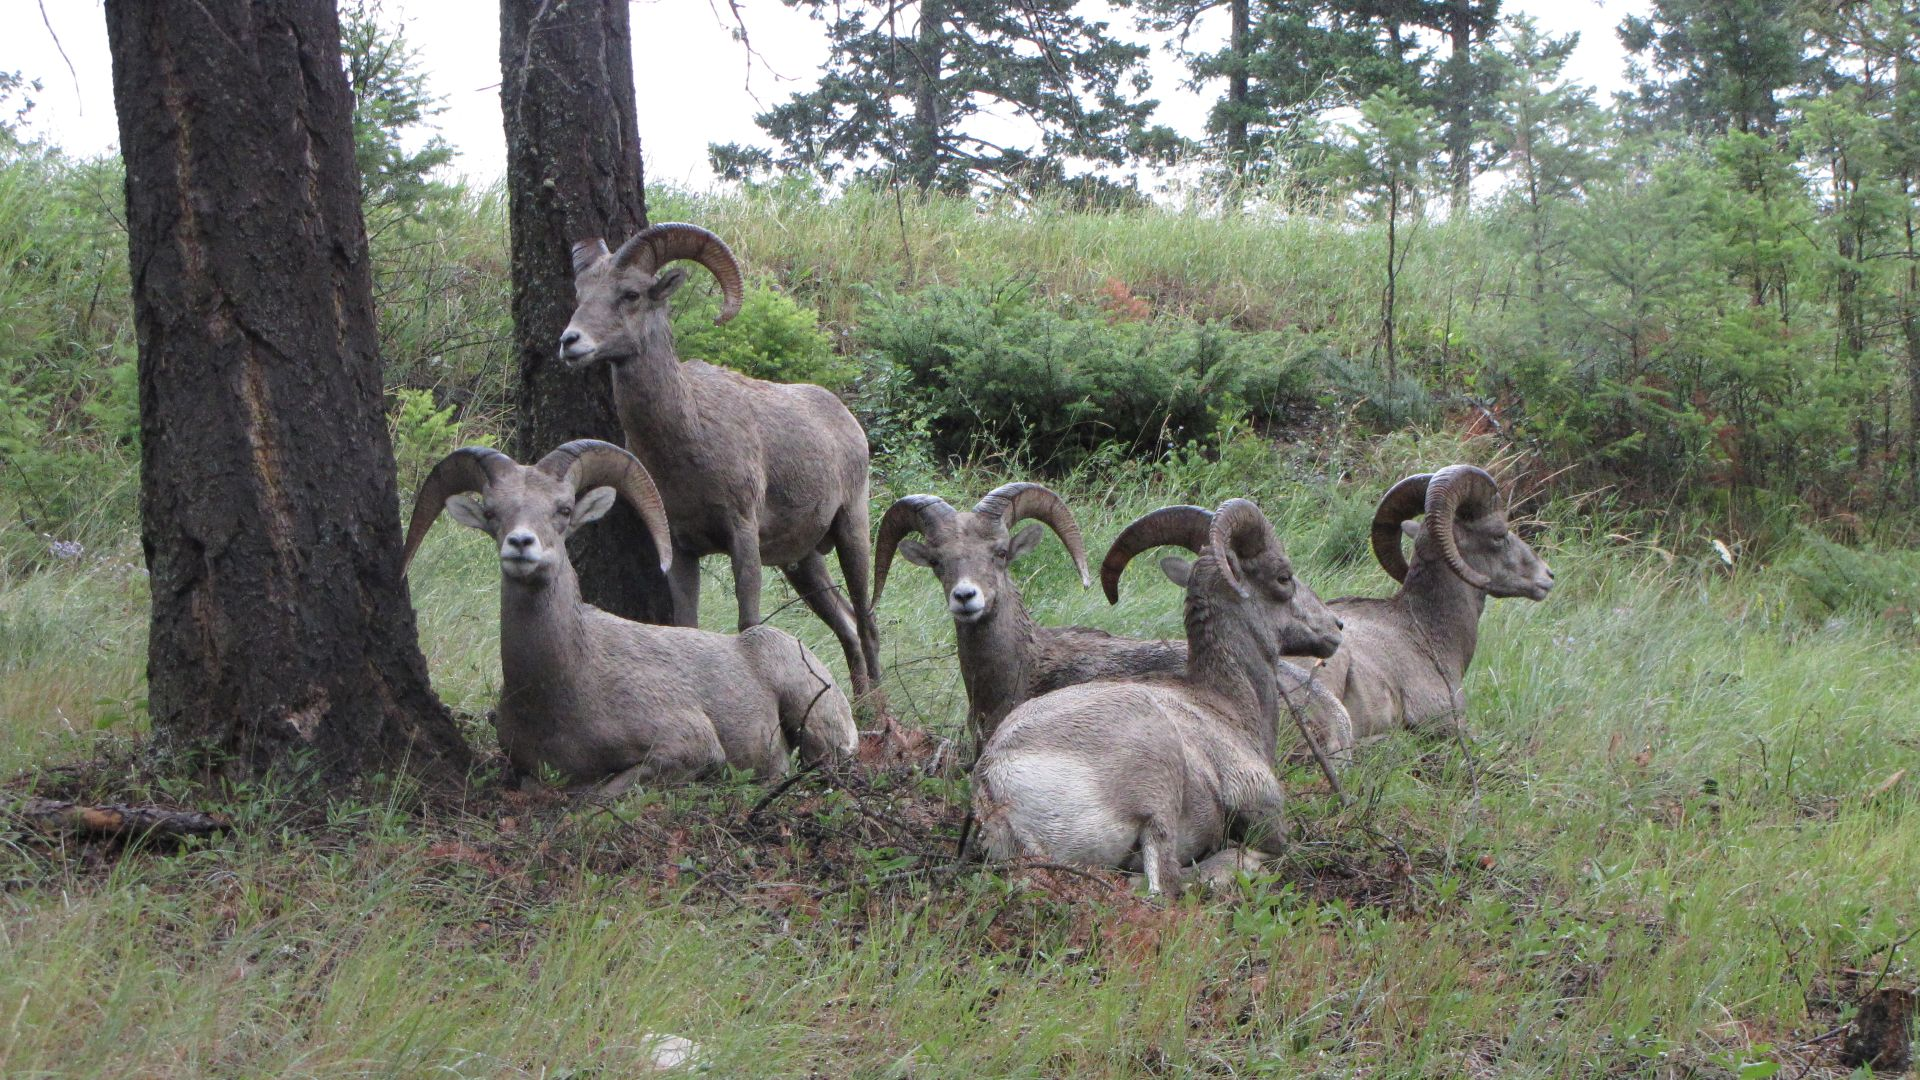 Kootenay Nat Pk, BC, Canada - Back row: \'Dopey\'; Middle Row from L to R: \'I\'ve got your number\', \'Do you eat sheep?\', \'Bored\'; Front Row: \'Indifferent\'